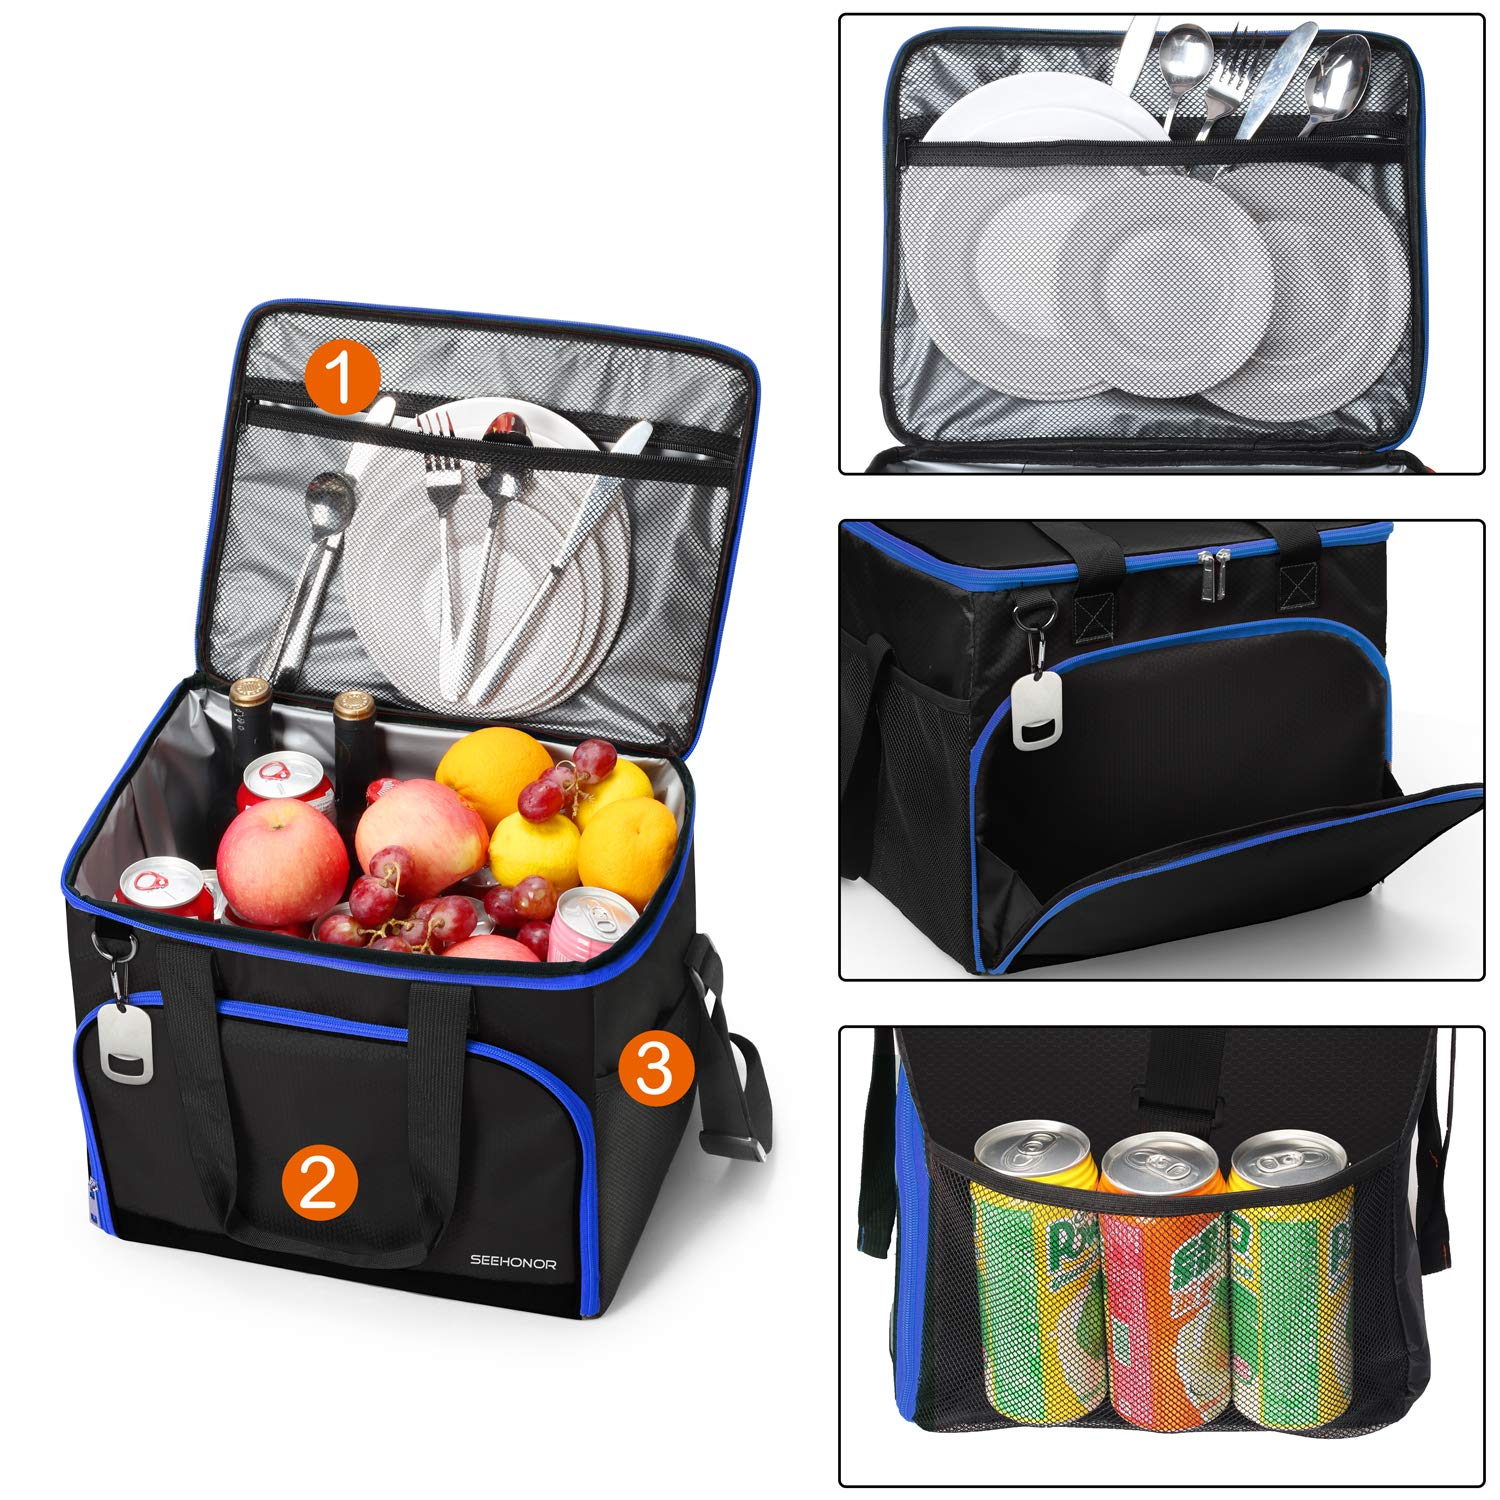 SEEHONOR Insulated Cooler Bag Leakproof Soft Sided Cooler Bag Collapsible Portable Cooler for Camping Picnic Lunch BBQ Beach 40 Cans